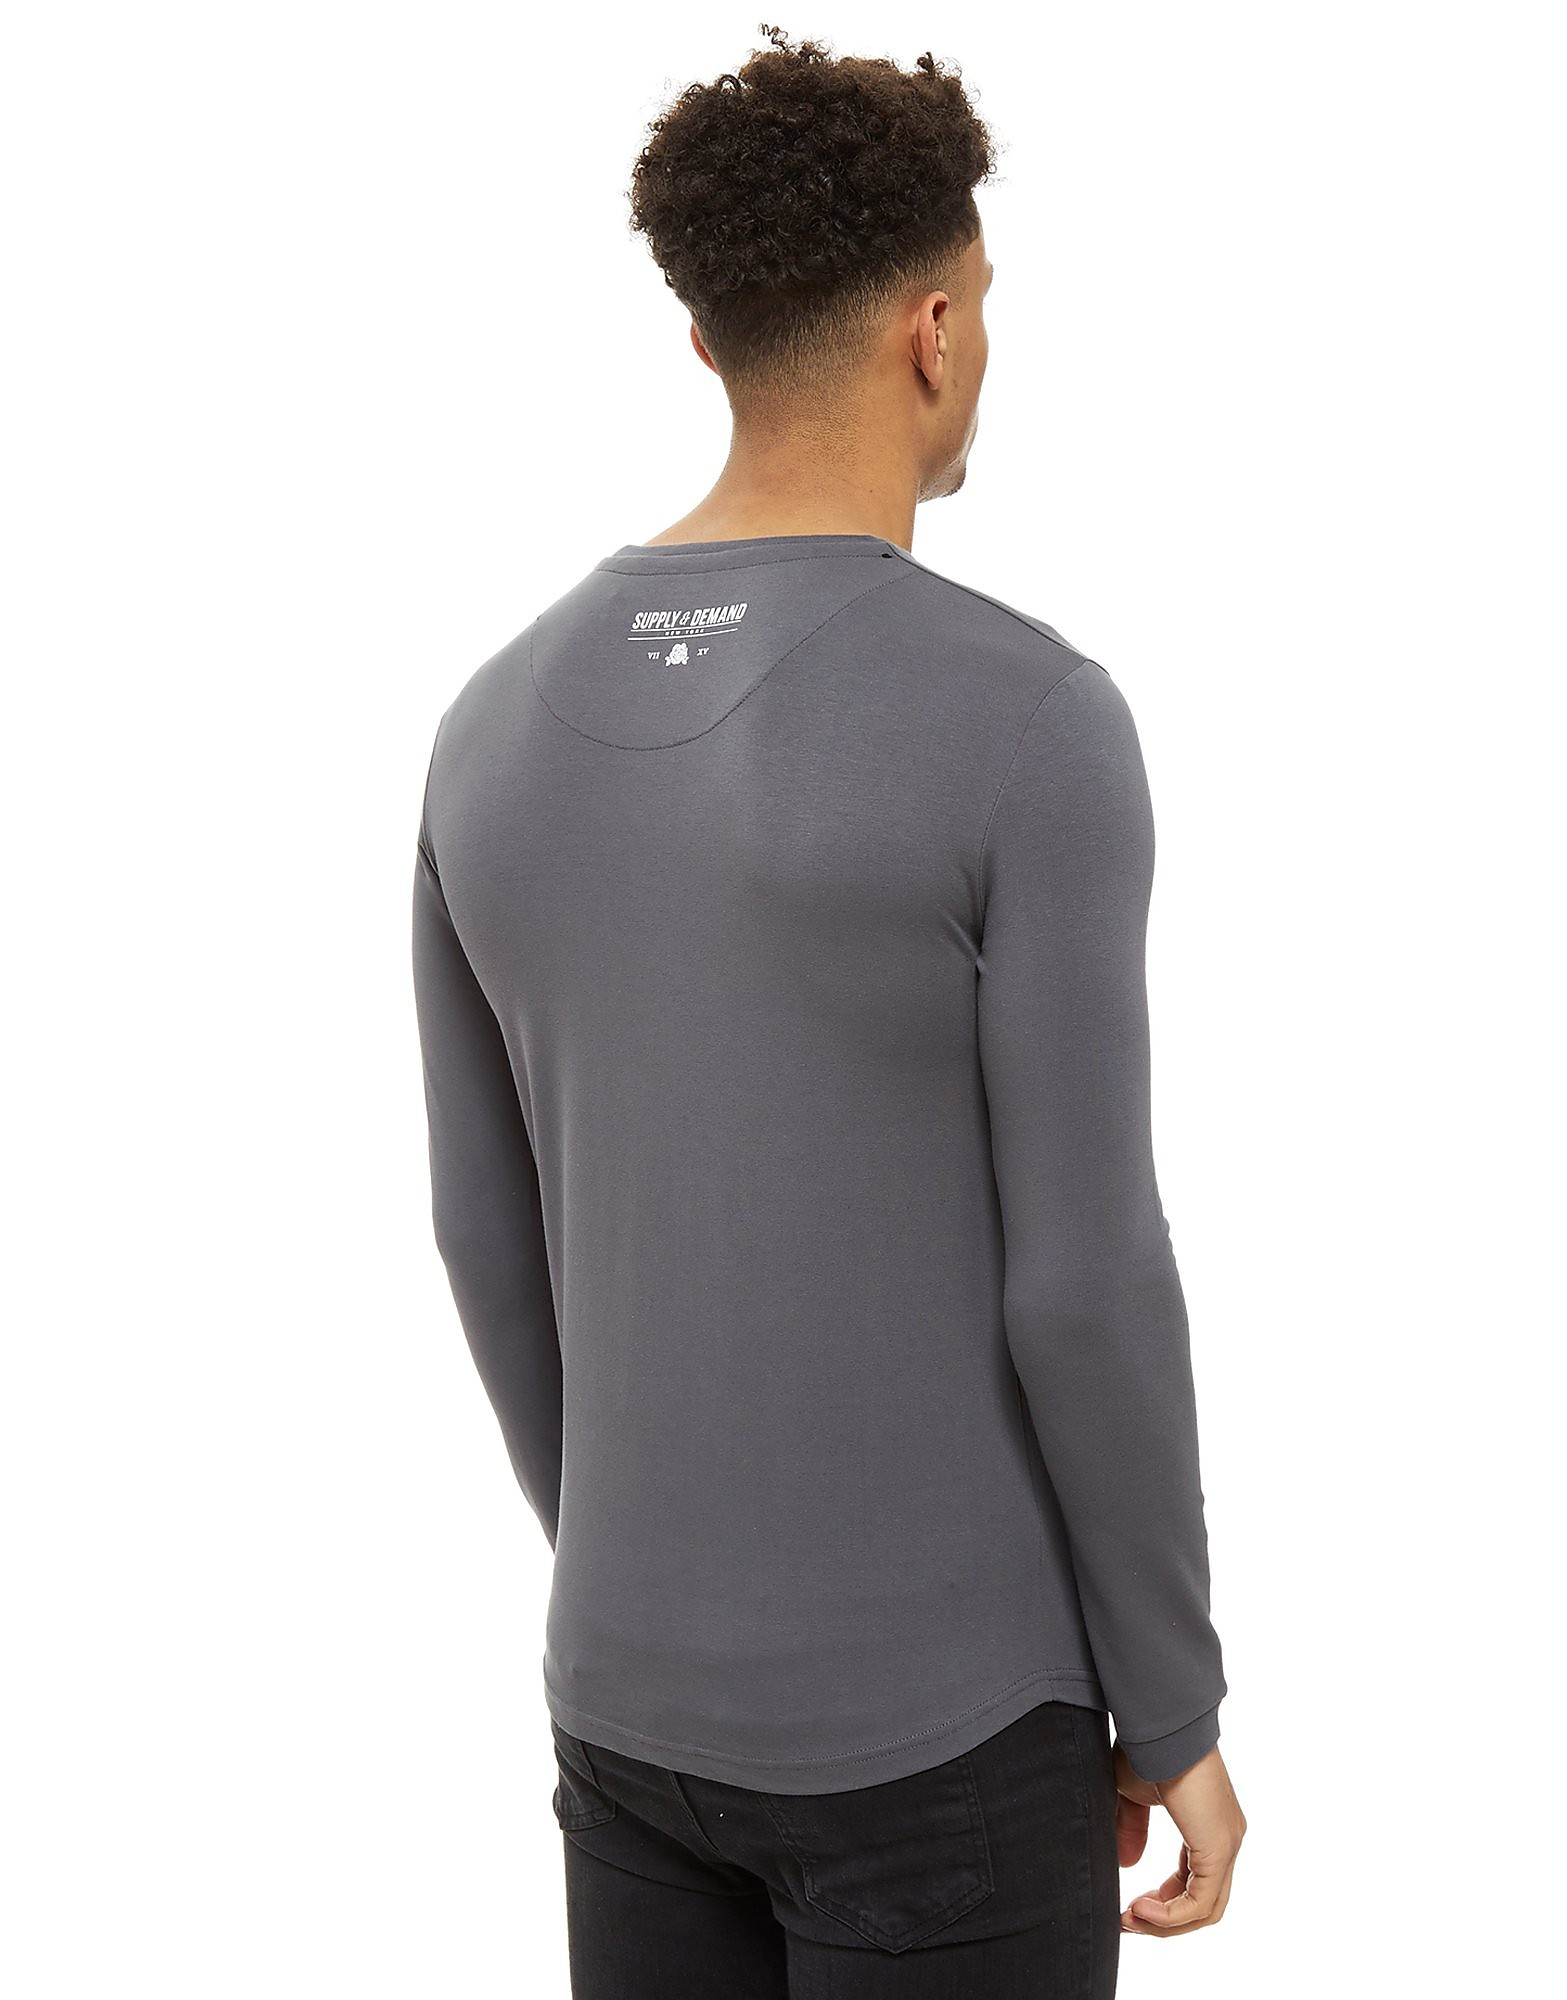 Supply & Demand Reps Long Sleeve T-Shirt